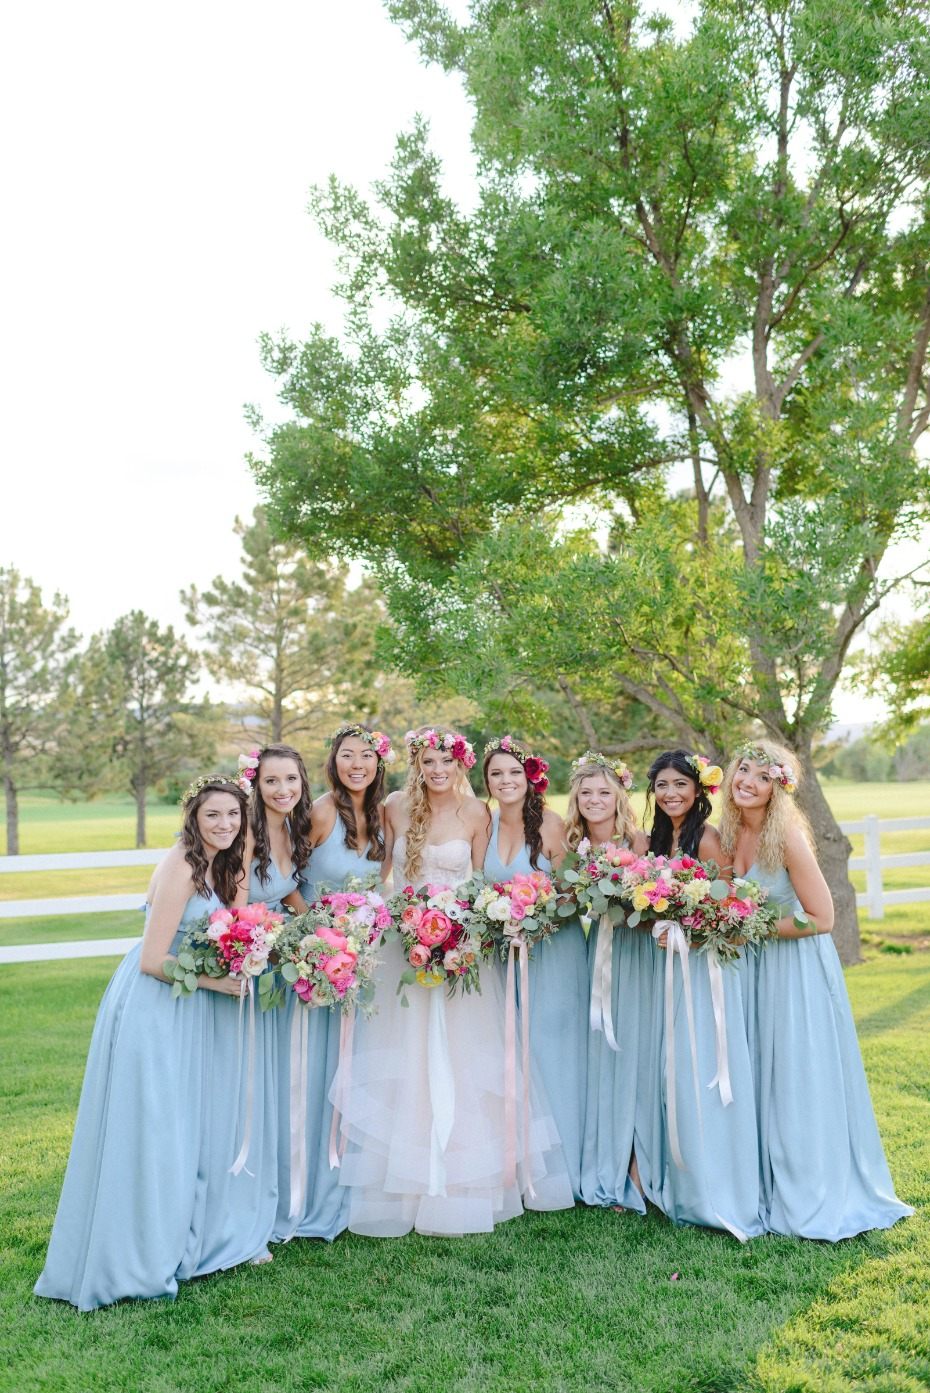 boho chic bride and bridesmaids